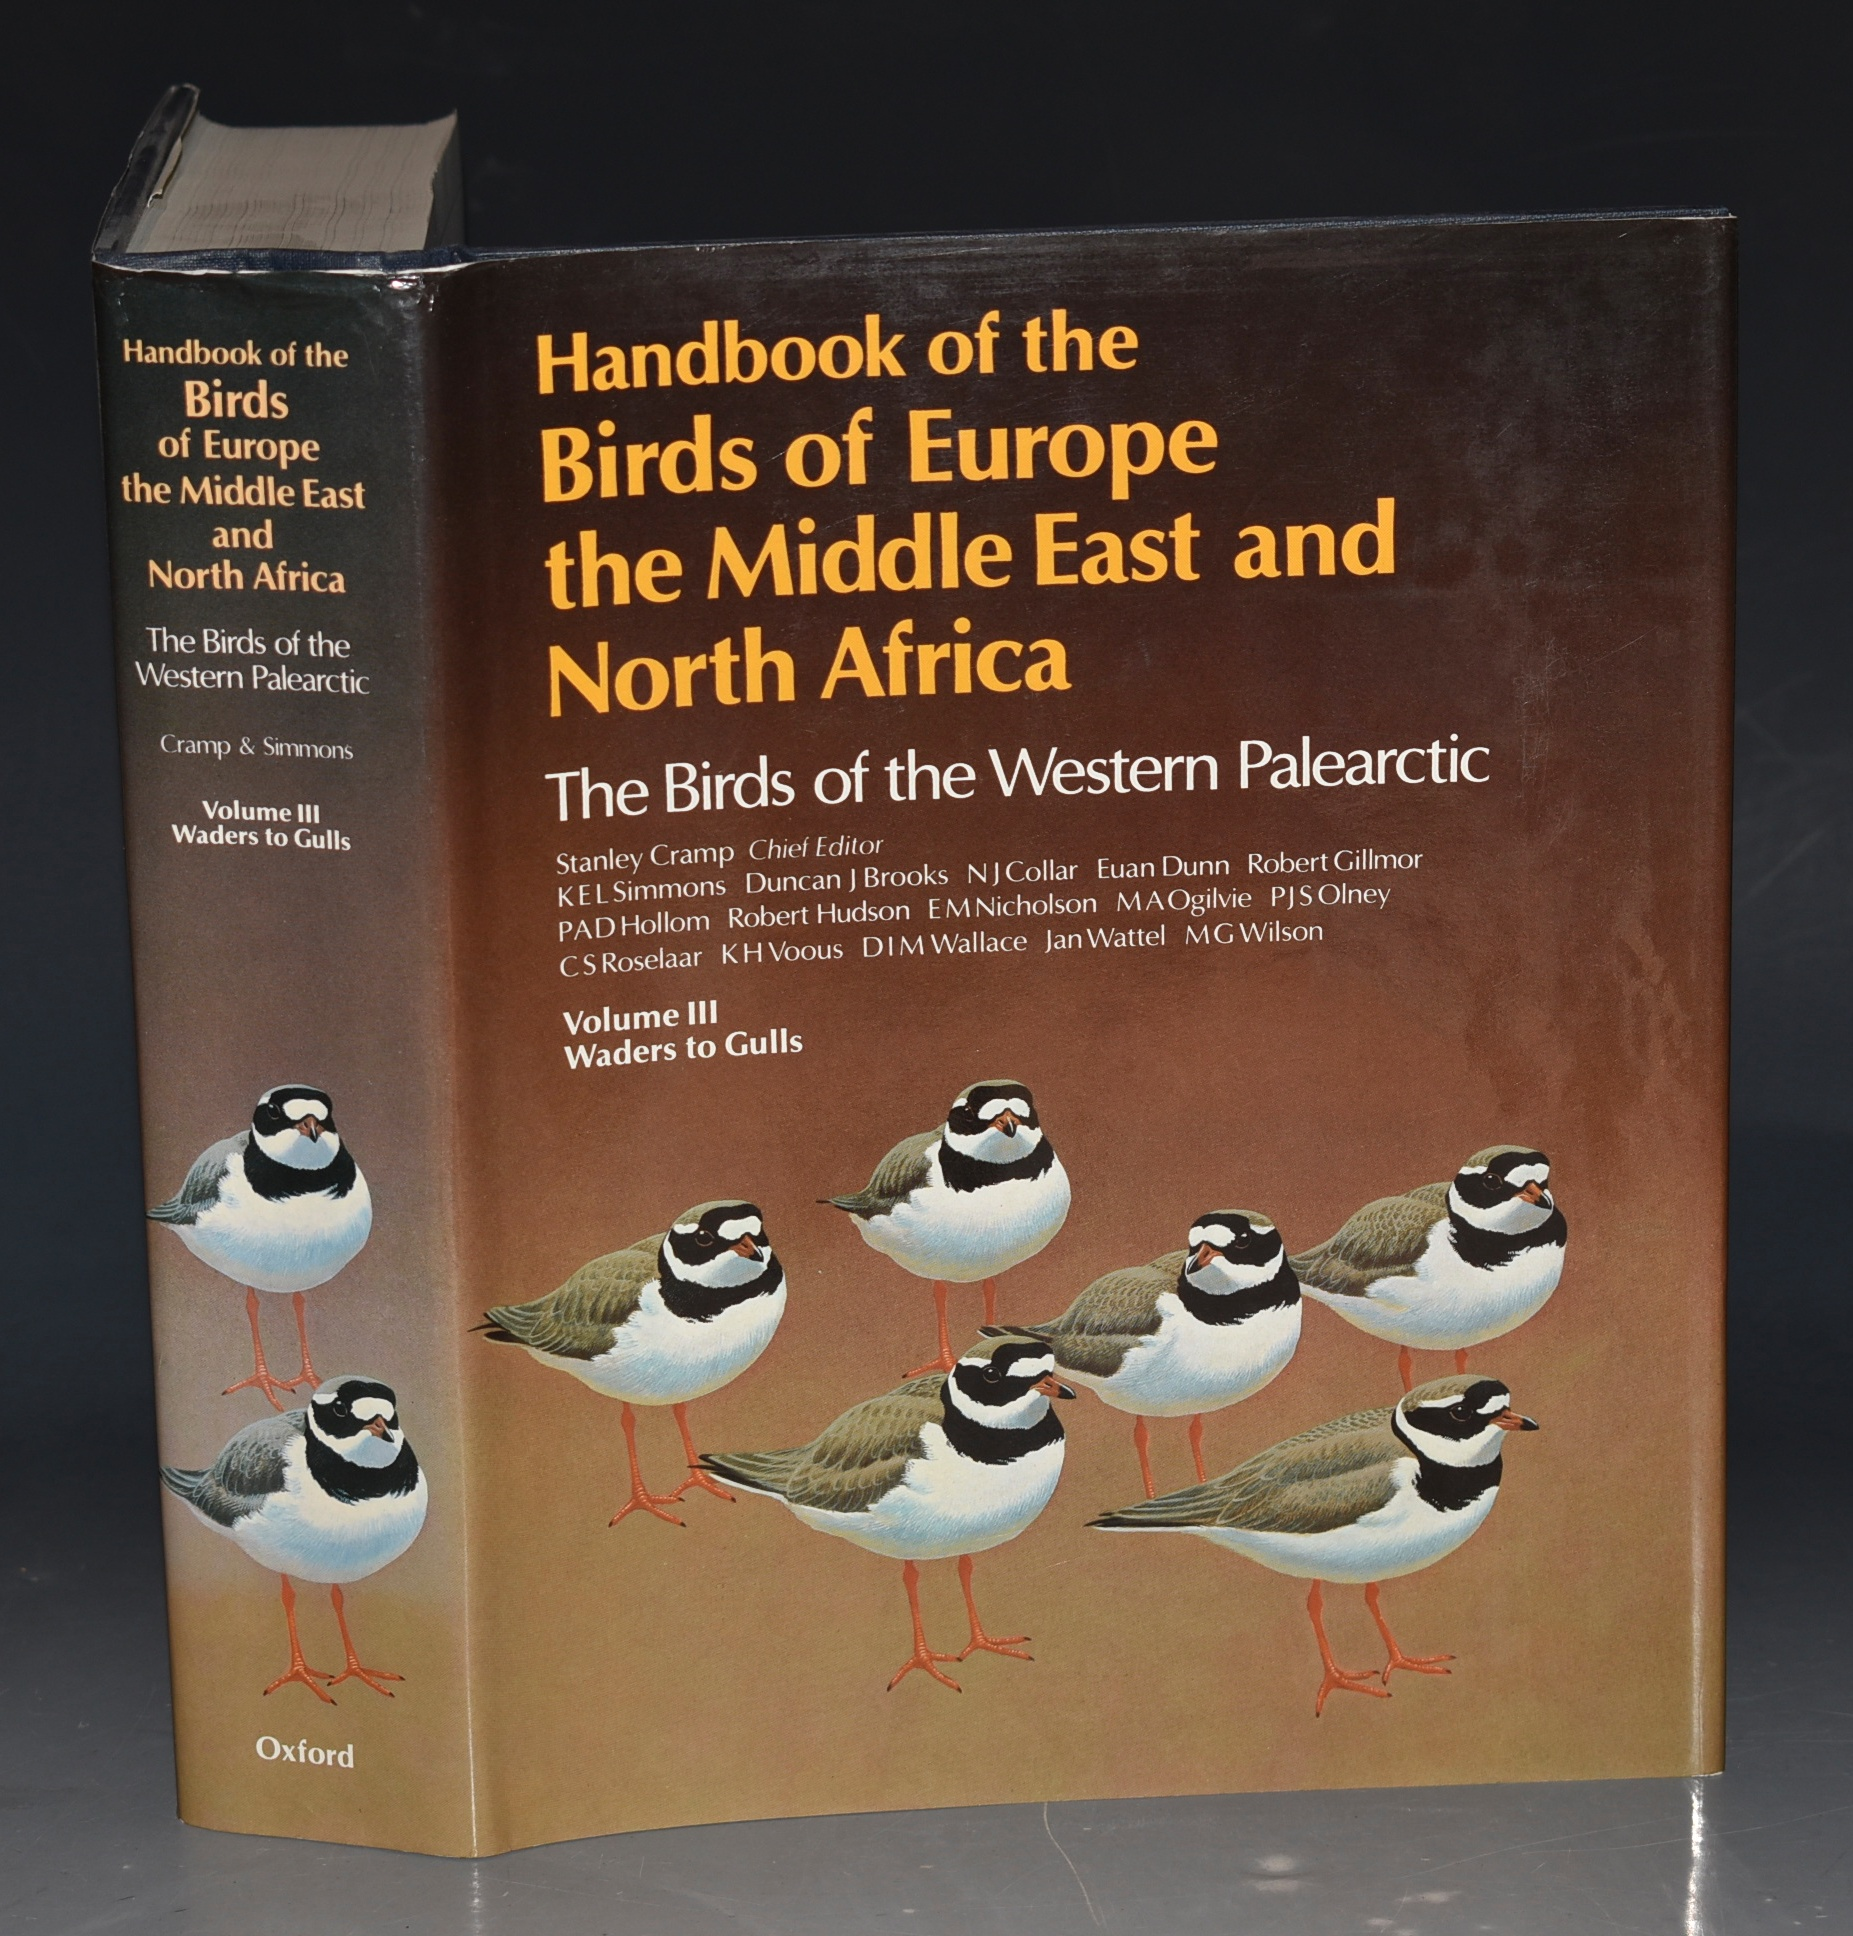 Image for Handbook of the Birds of Europe, the Middle East and North Africa: The Birds of the Western Palearctic: Volume III (3) - Waders to Gulls (complete in itself).